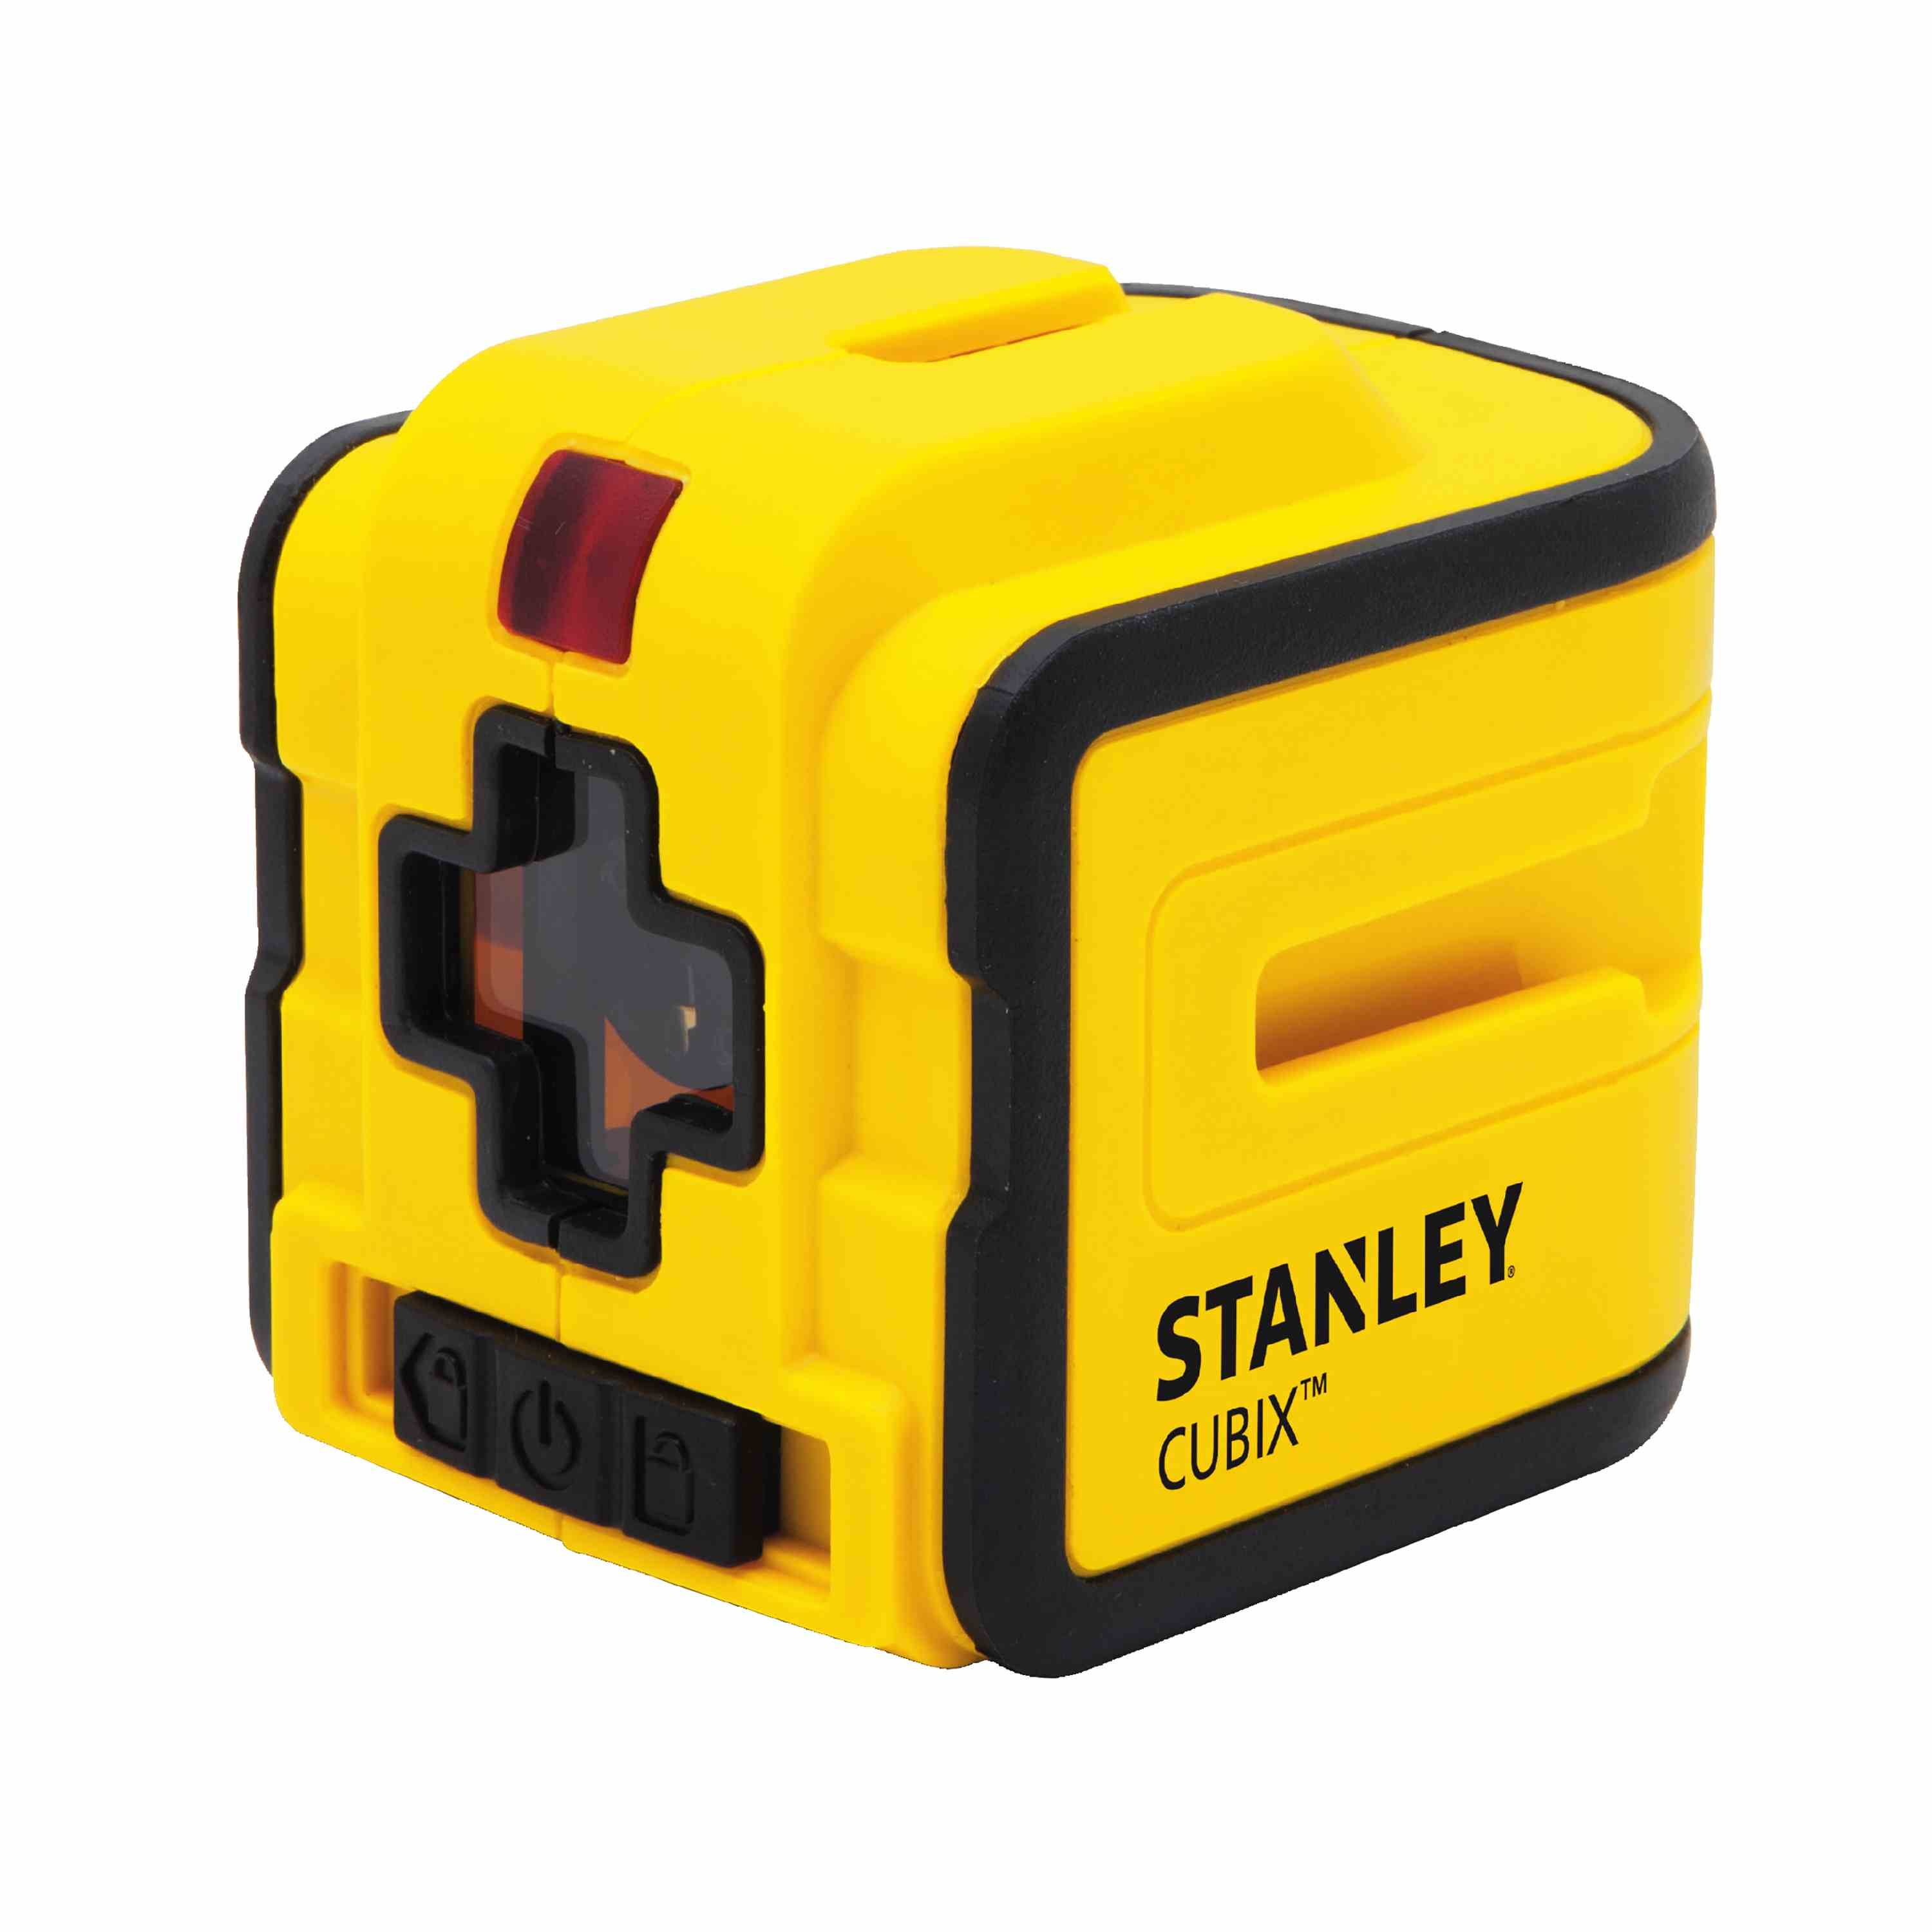 Stanley Cubix™ Cross Line Laser Level